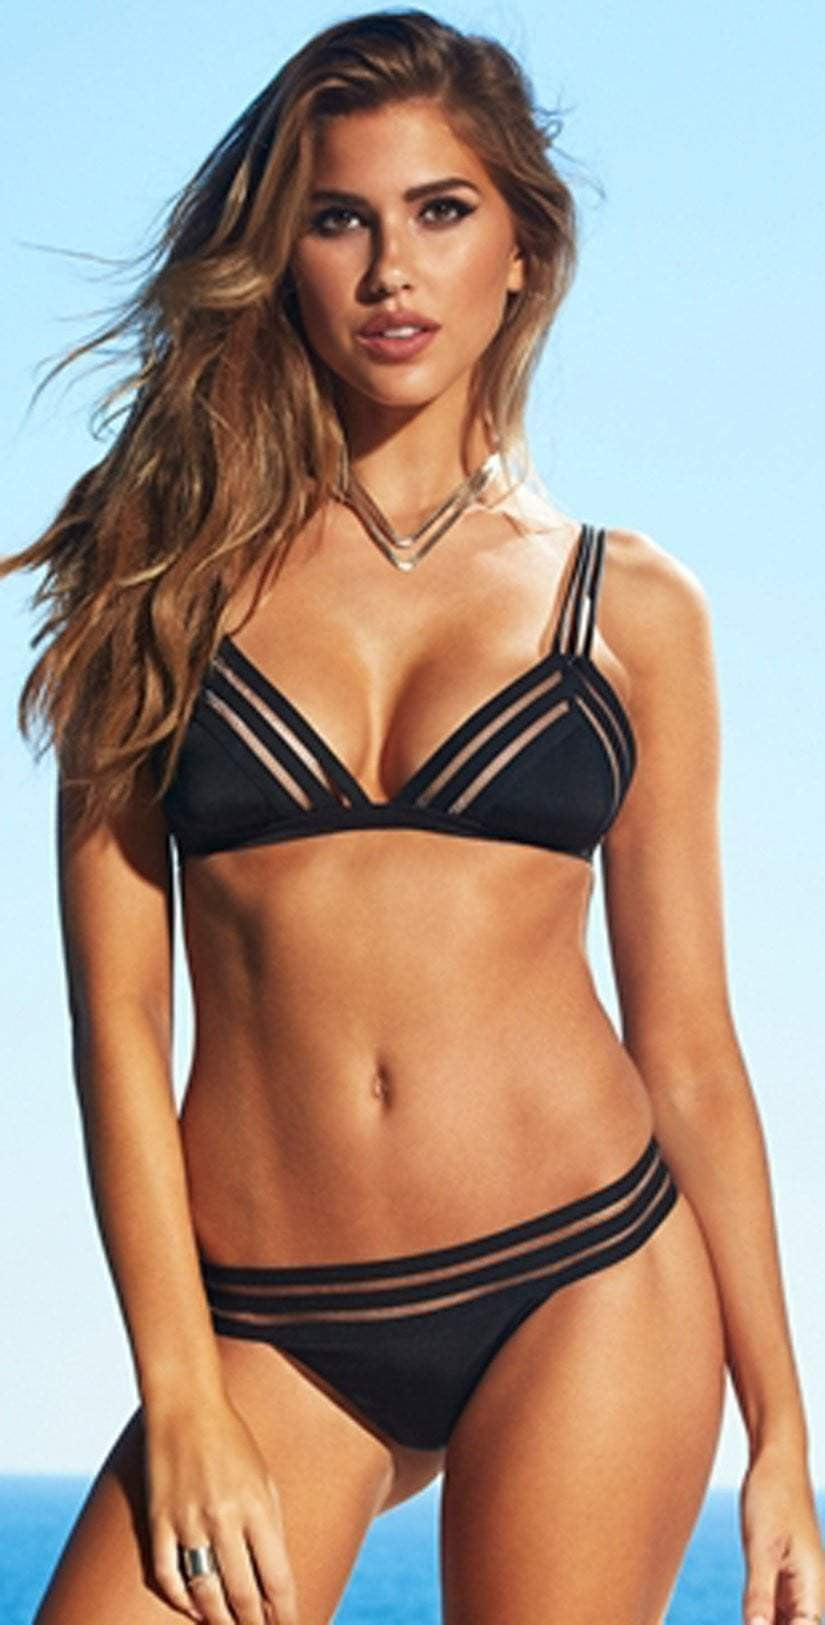 Beach Bunny Sheer Addiction Black Triangle Bikini